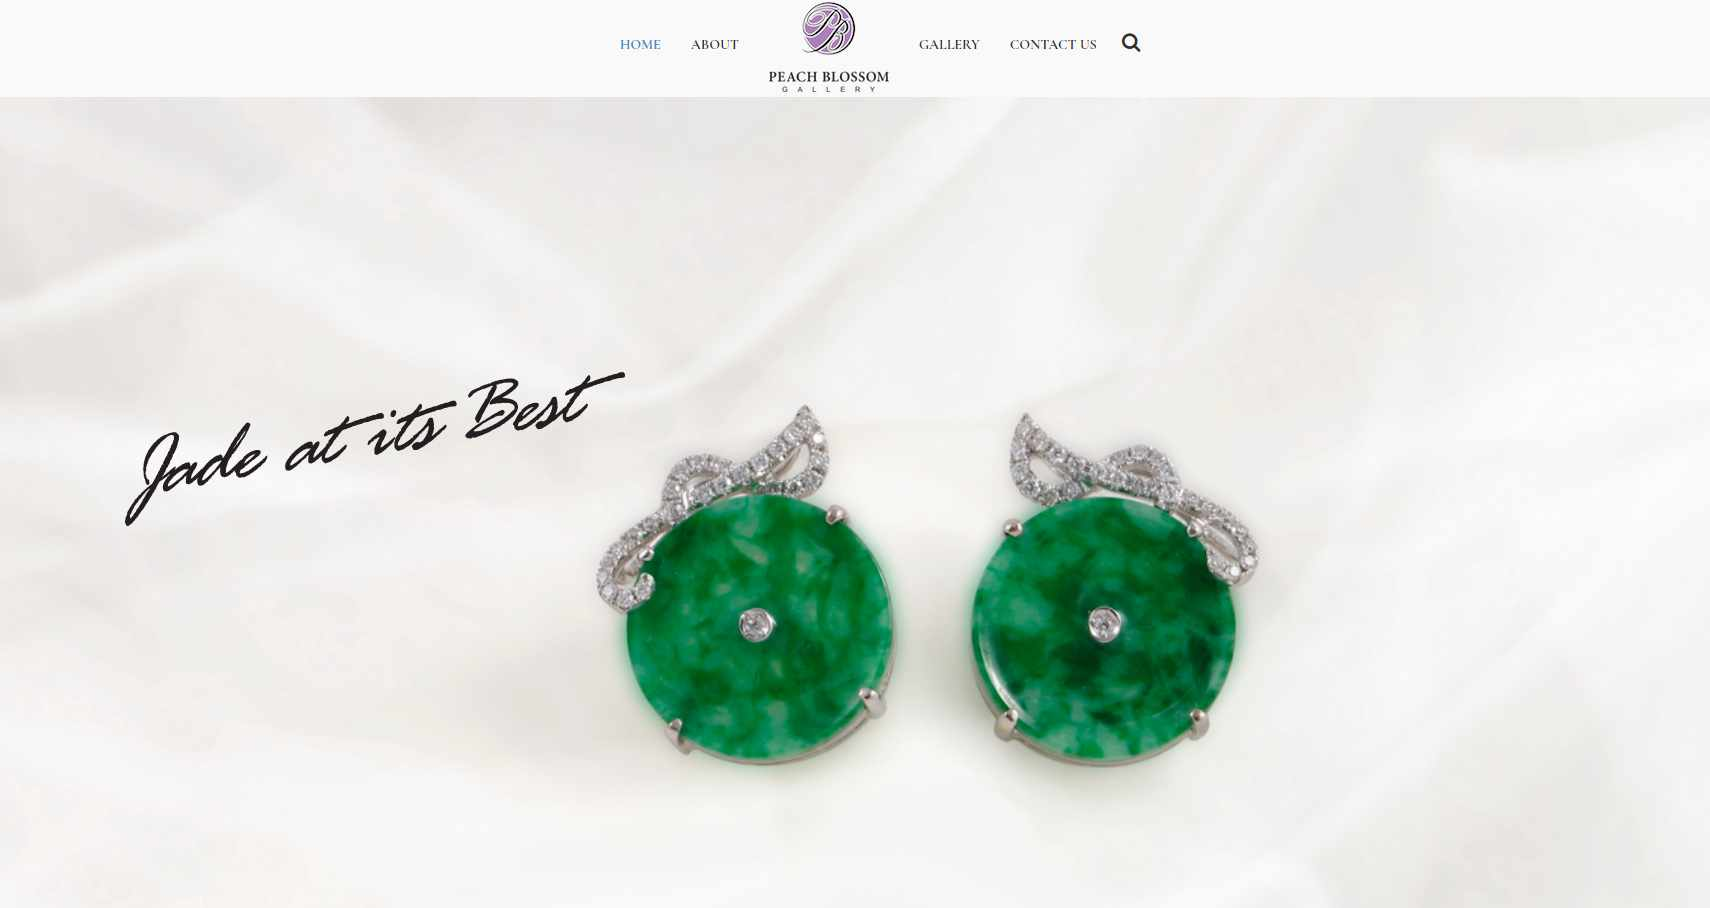 Peach Blossom Top Jewellery Stores in Singapore